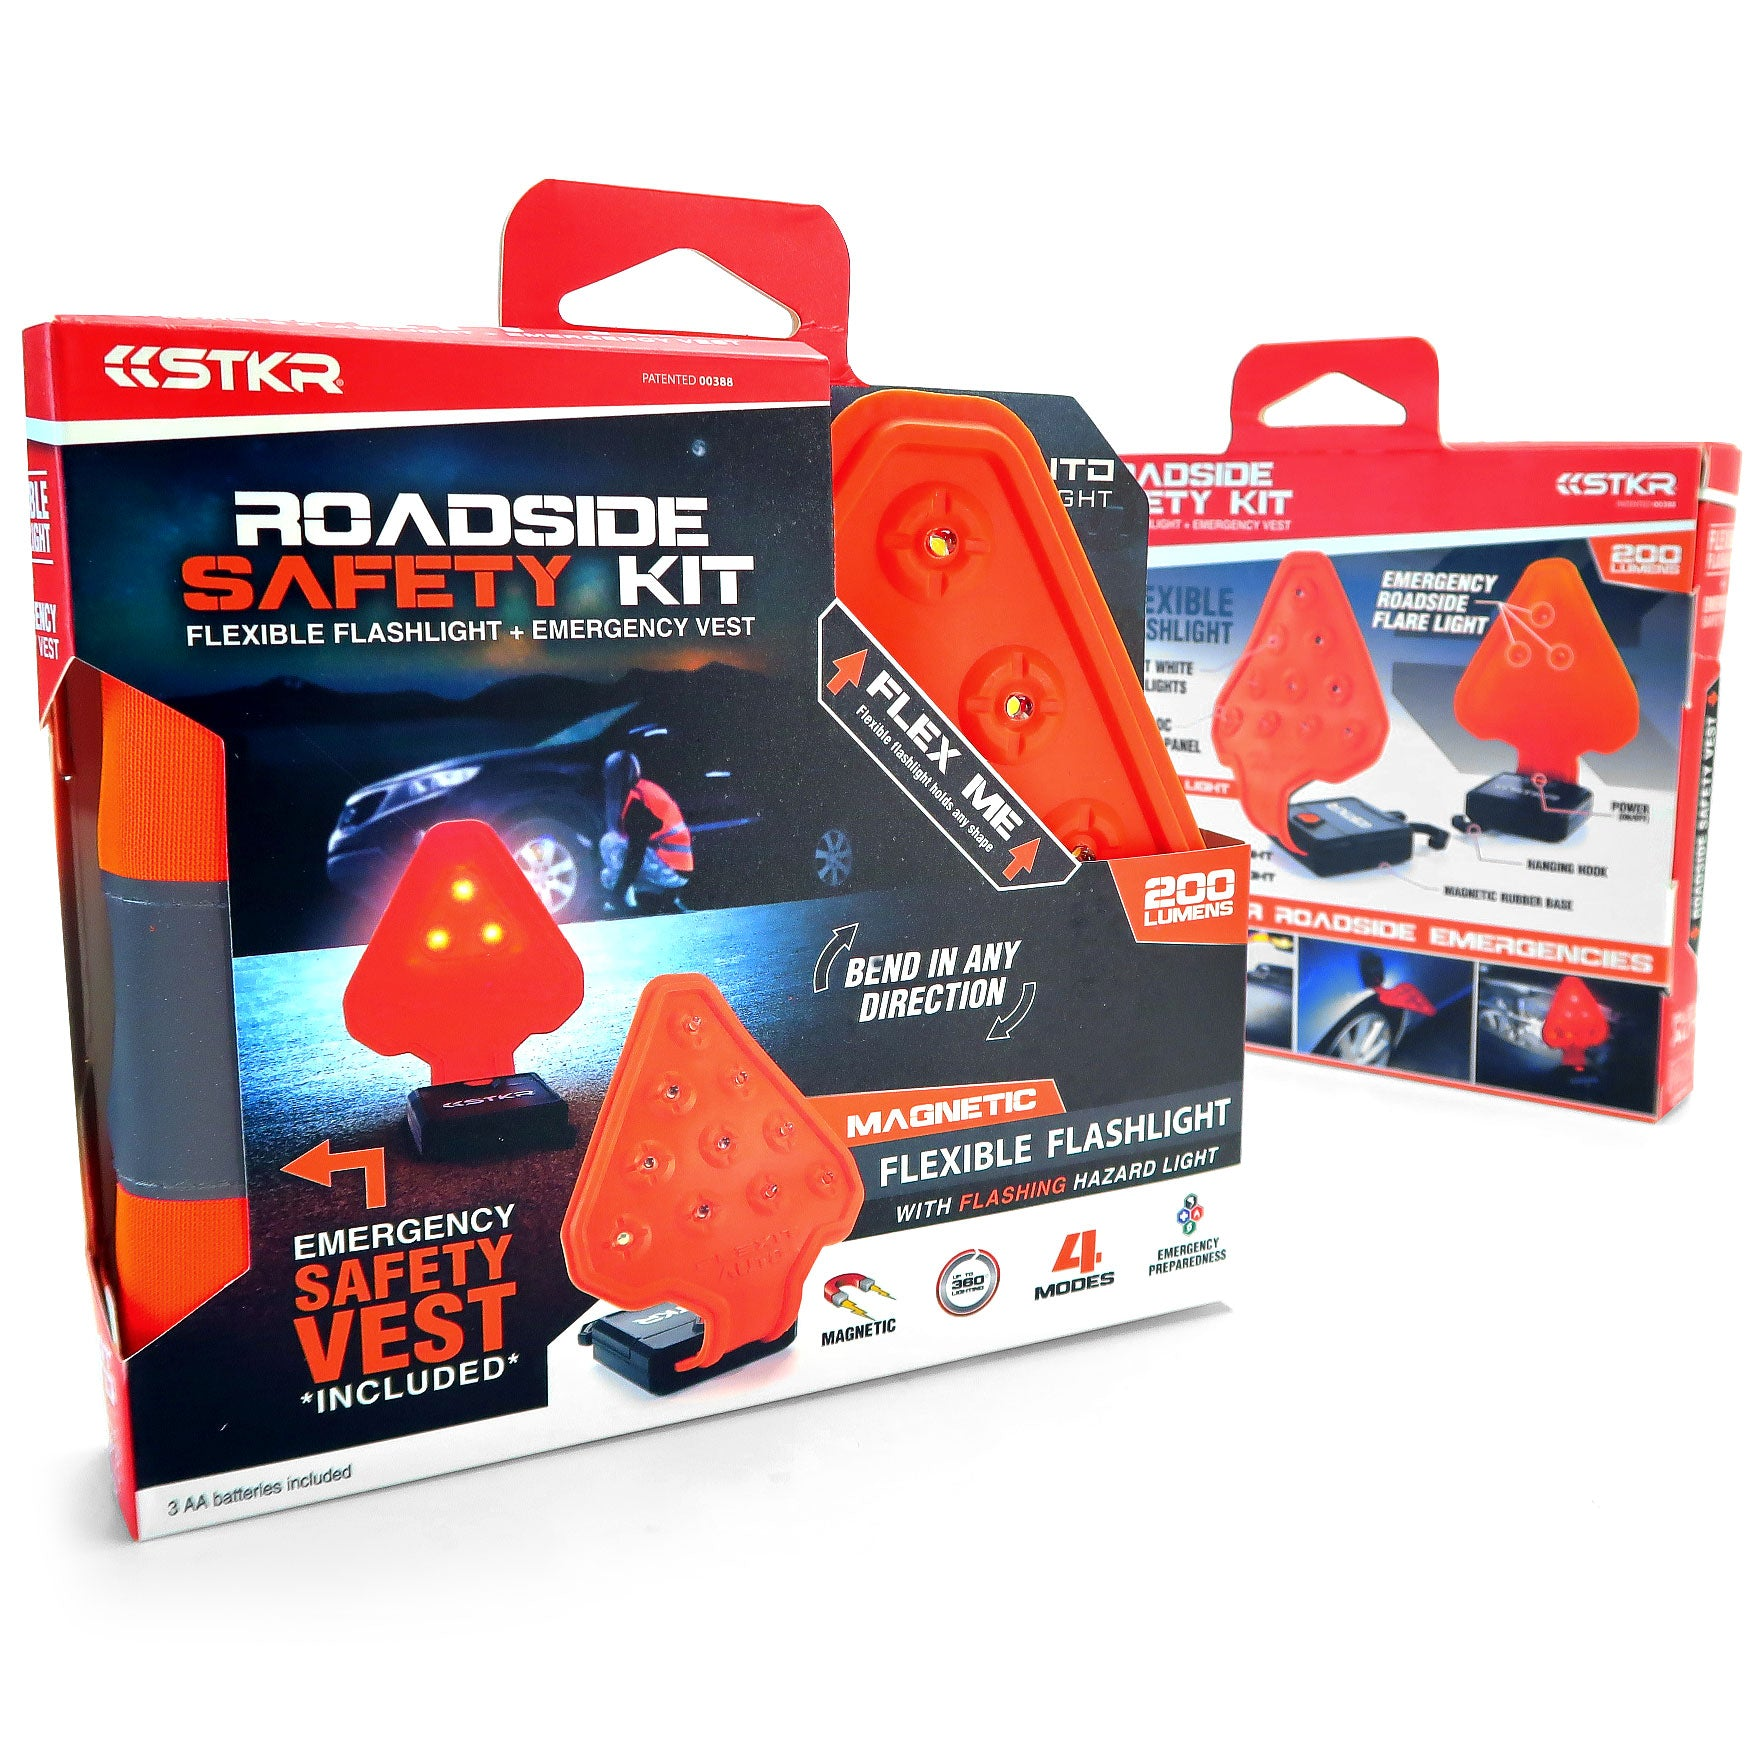 The STKR Concepts FLEXIT Auto Flexible Flashlight with Rear Facing Hazard Light with Roadside Safety Vest - striker